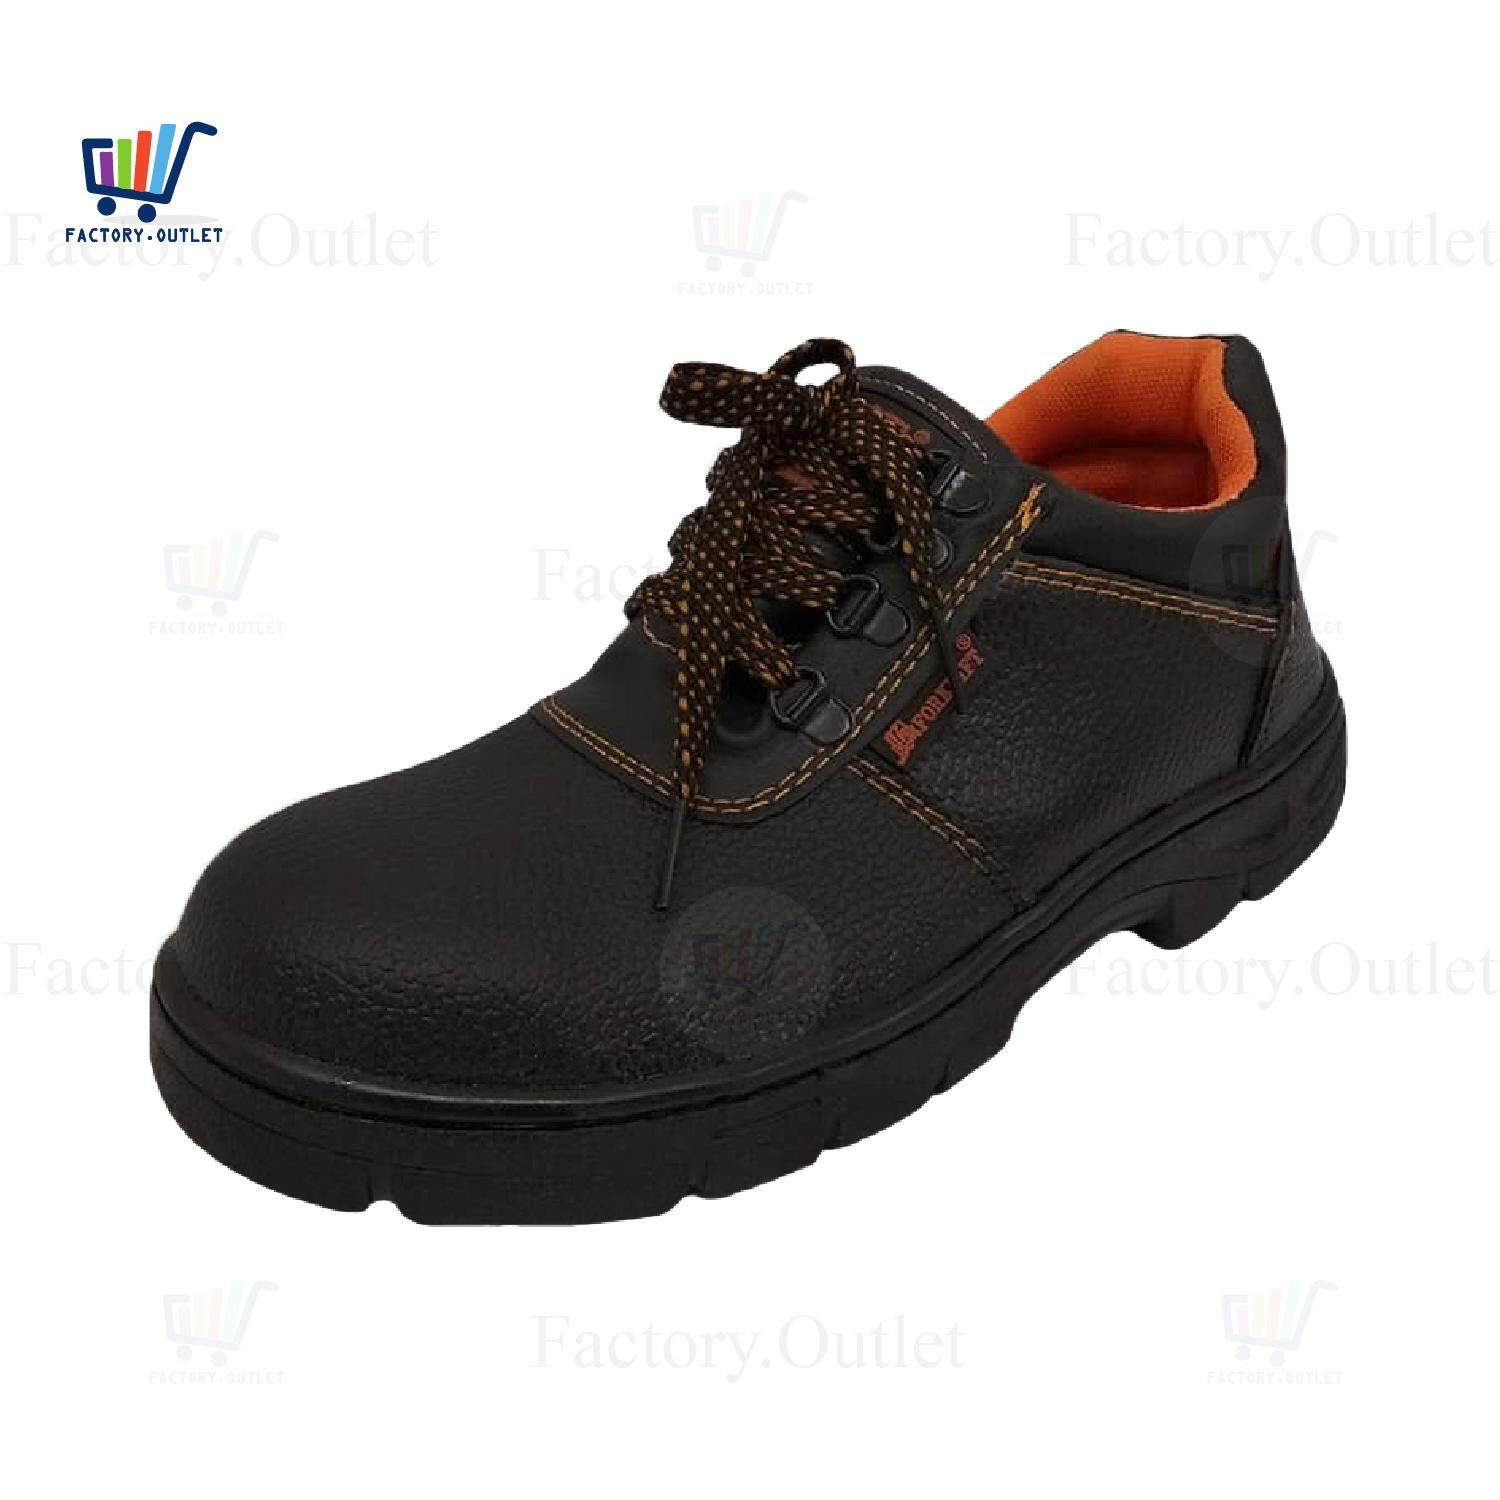 Modyf Men Steel Toe Cap Work Safety Shoes Outdoor Ankle Boots Fashion Puncture Proof Footwear Online Shop Back To Search Resultsshoes Men's Boots